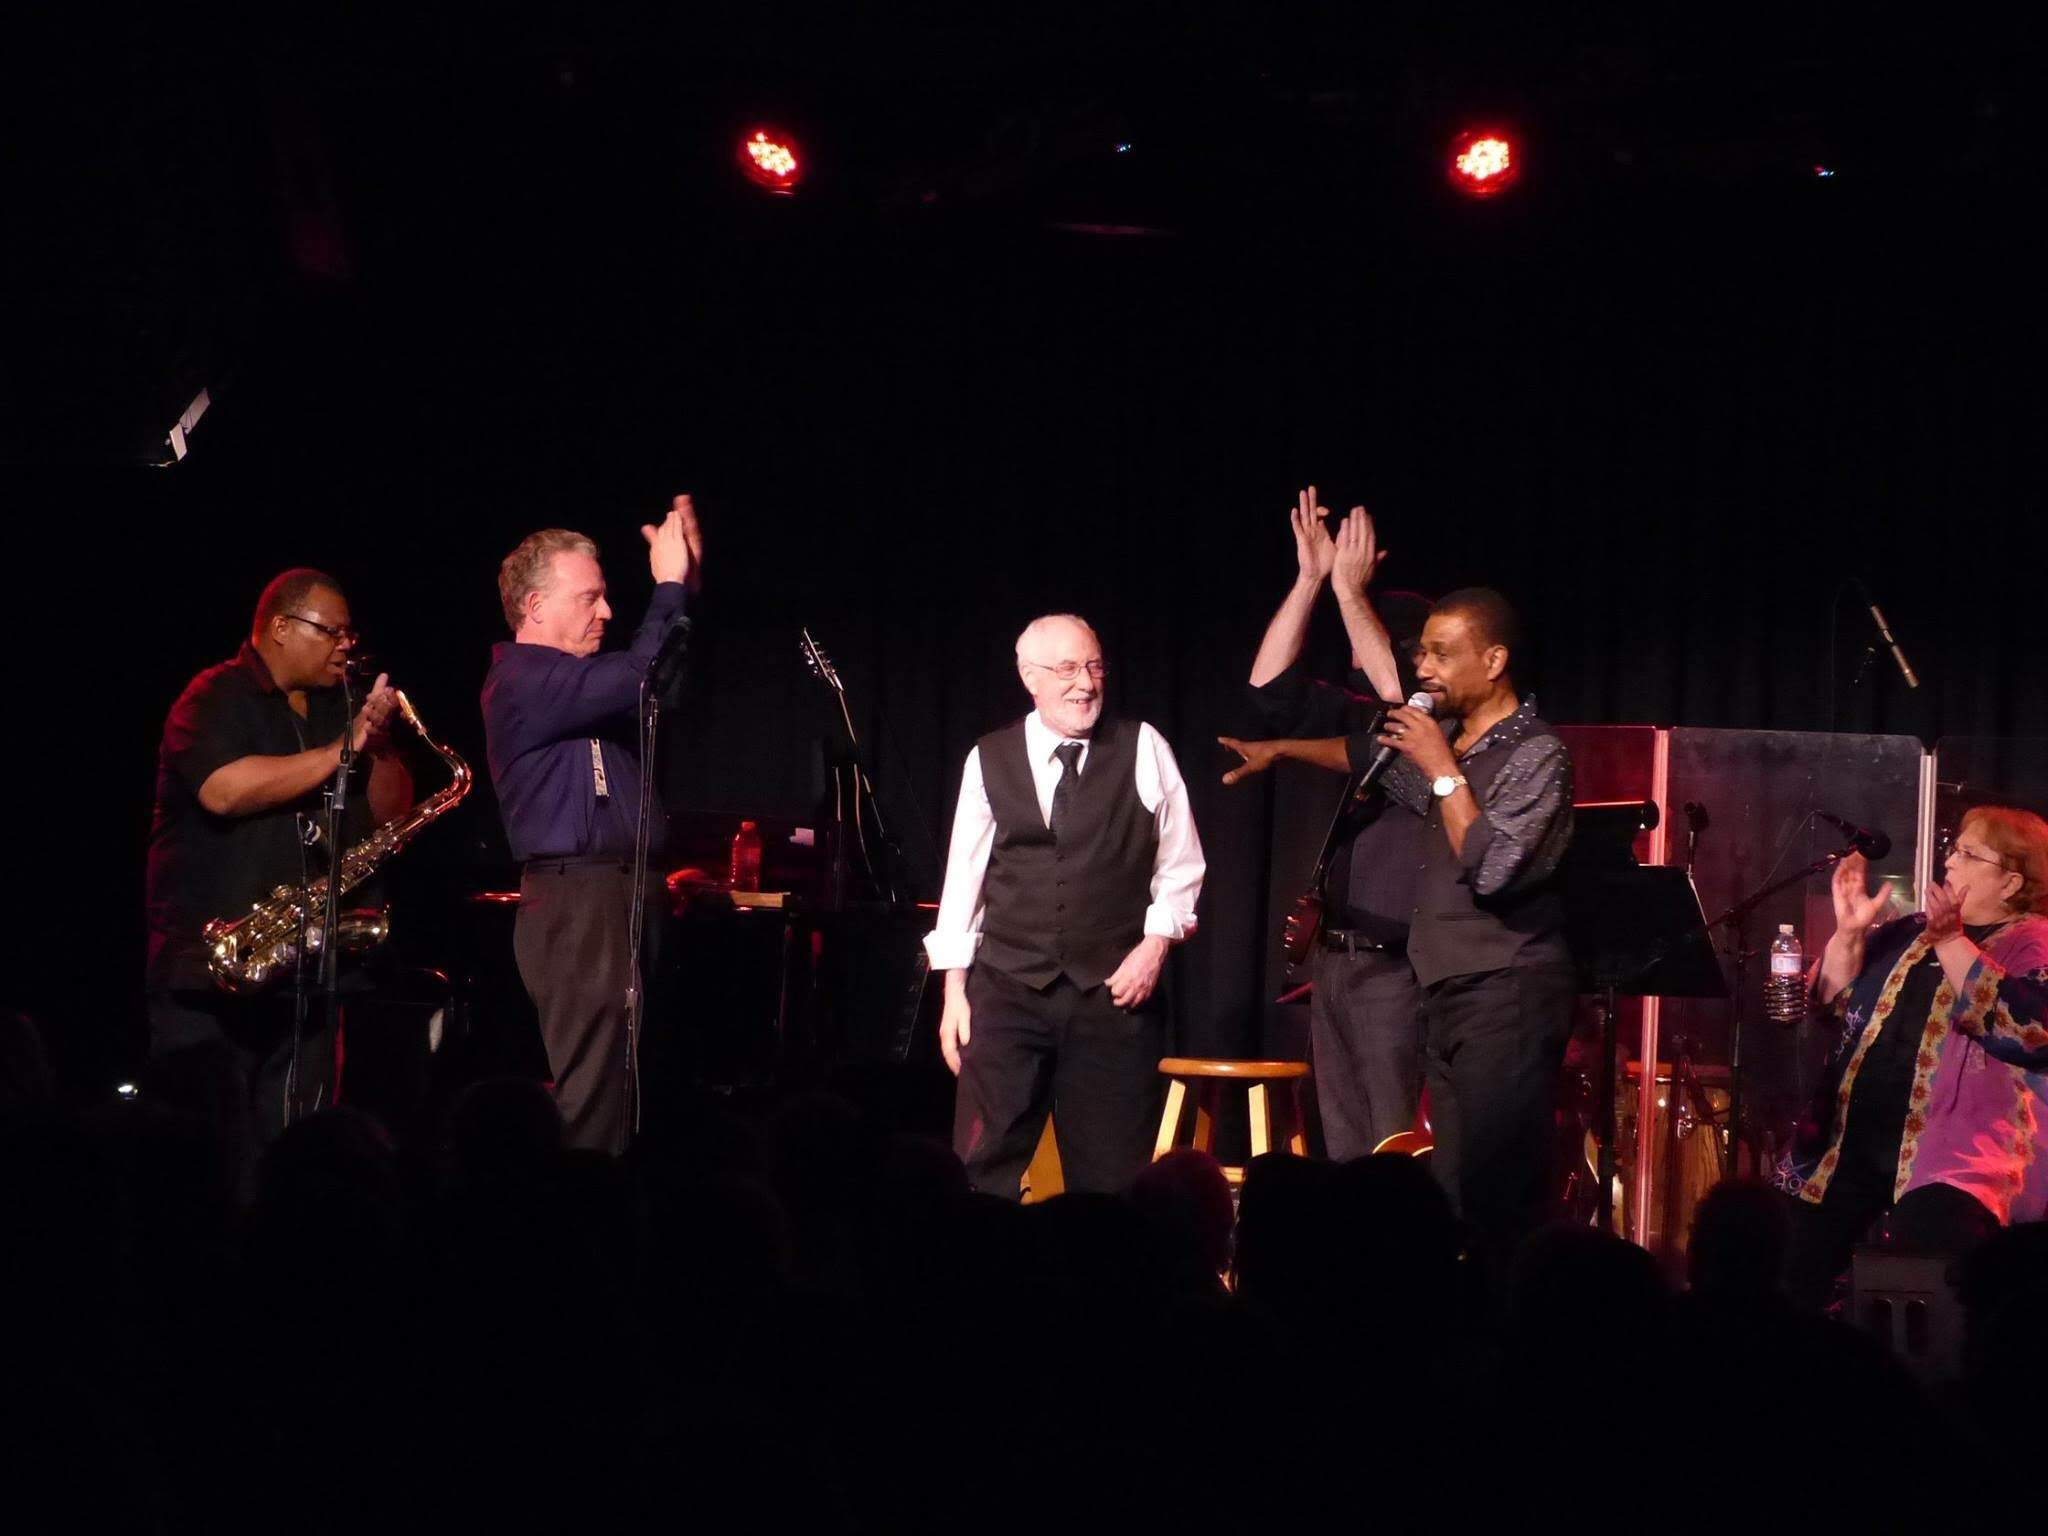 Arthur Lisi at the Birchmere with Cleve Francis musicians onstage clapping